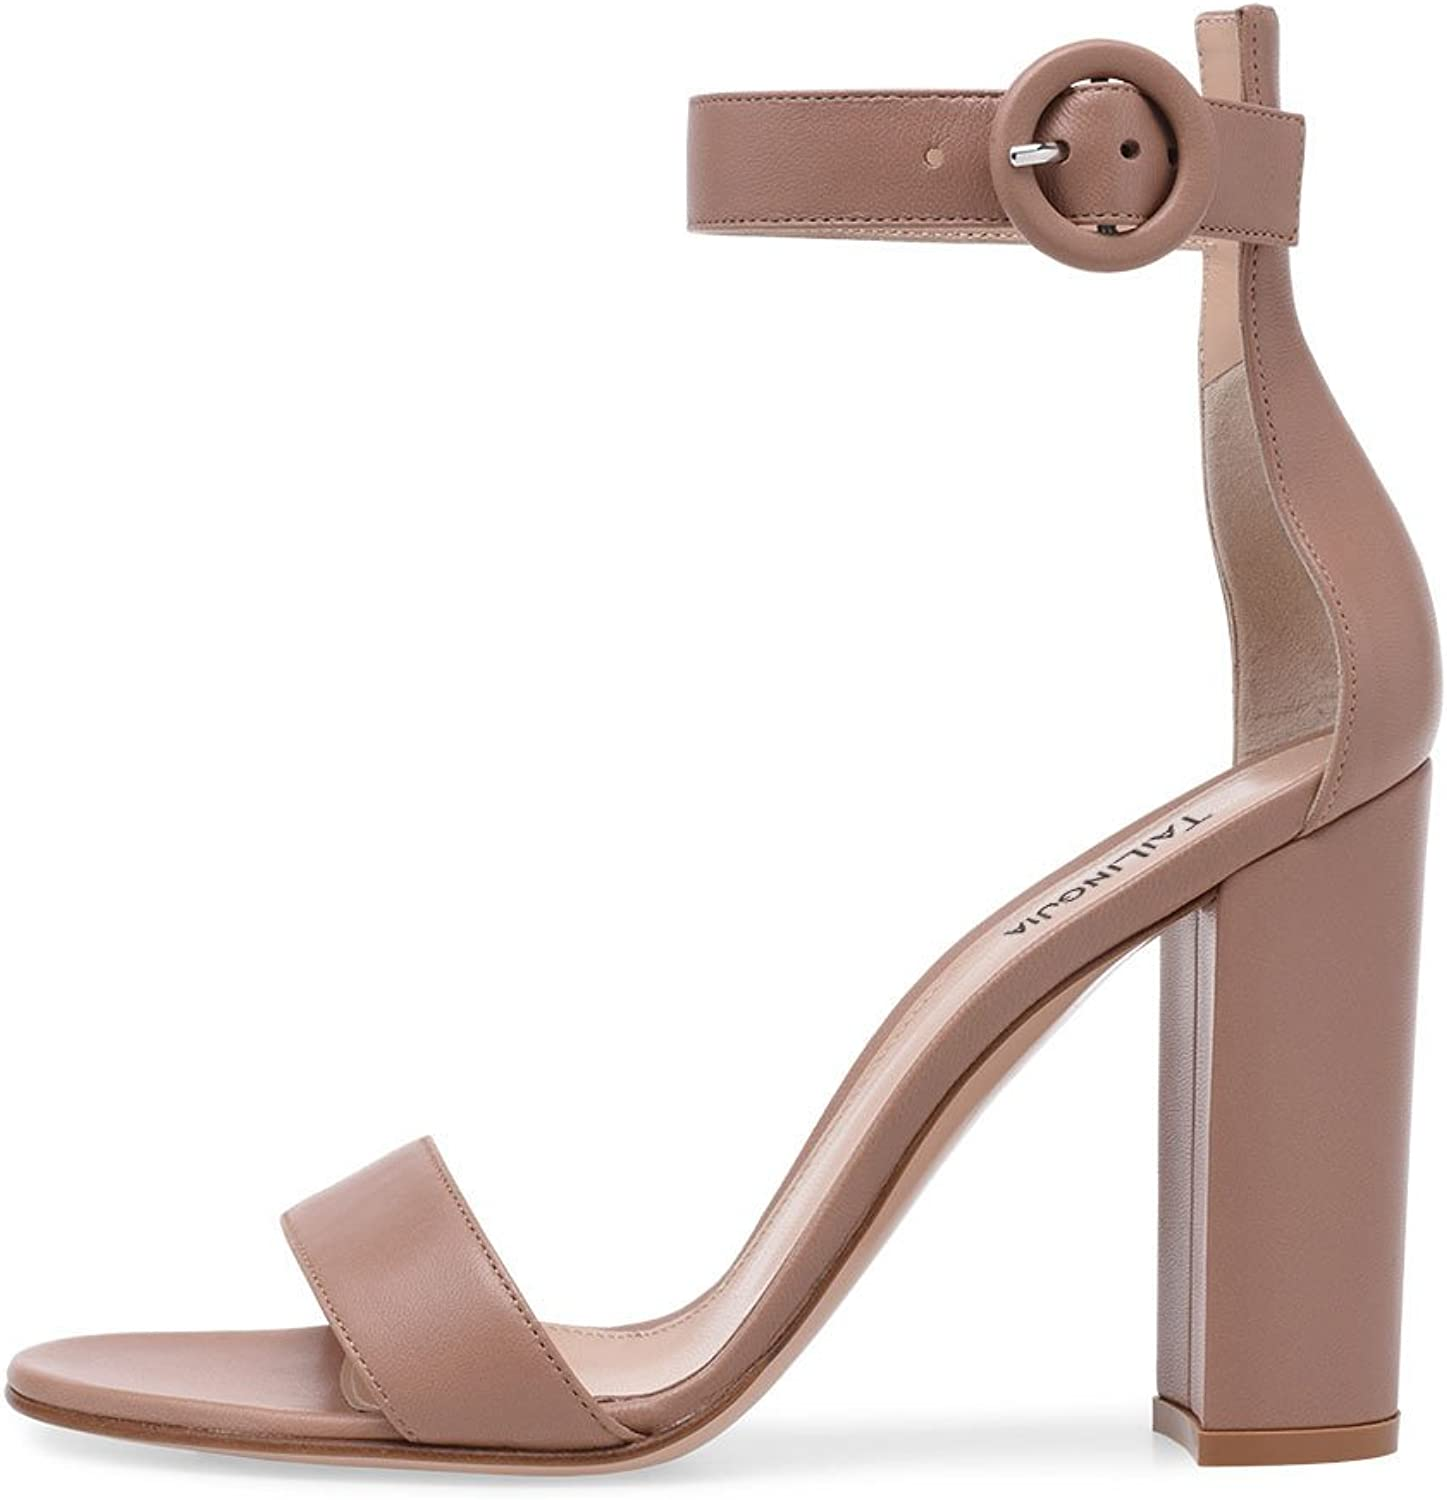 Women's shoes PU Summer Novelty Sandals Stiletto Heel Open Toe Buckle White Pink Black Party & Evening Party & Evening Sandals